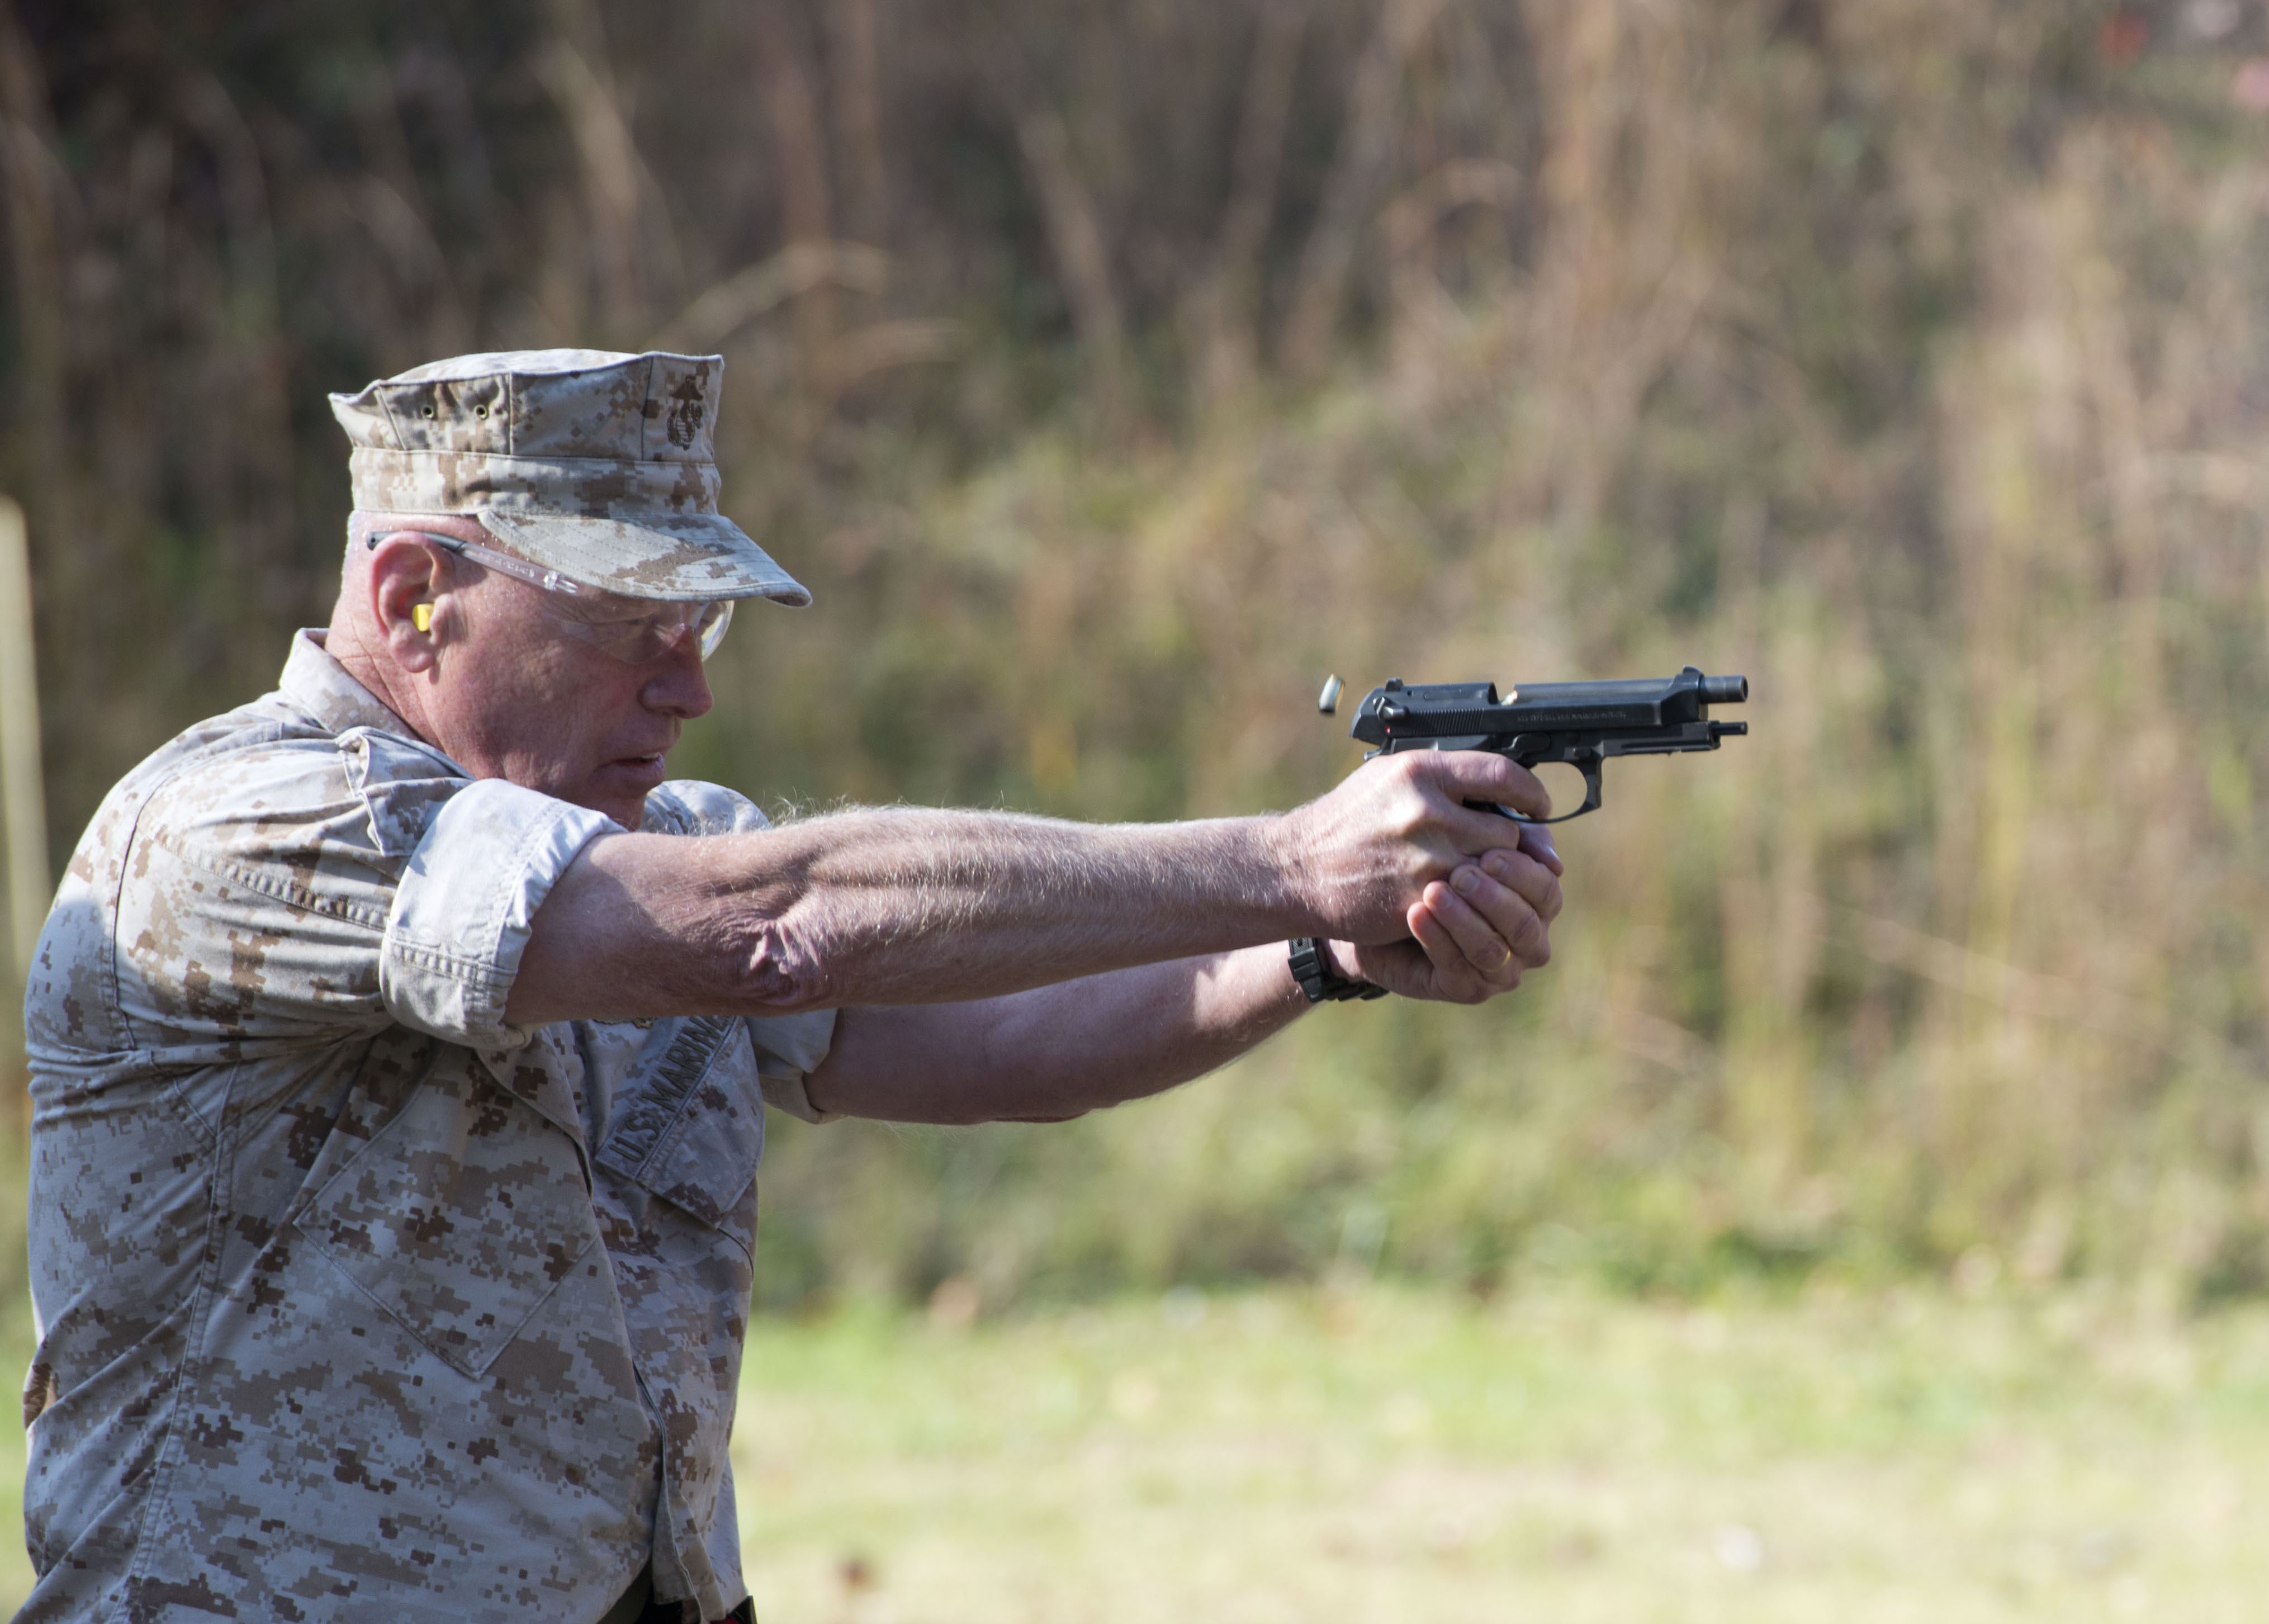 Lieutenant Gen. Kenneth J. Glueck, Jr., fires a M9 pistol during the 4th Annual Quantico Combat Shooting Match Oct. 29, 2014. US Marine Corps Photo